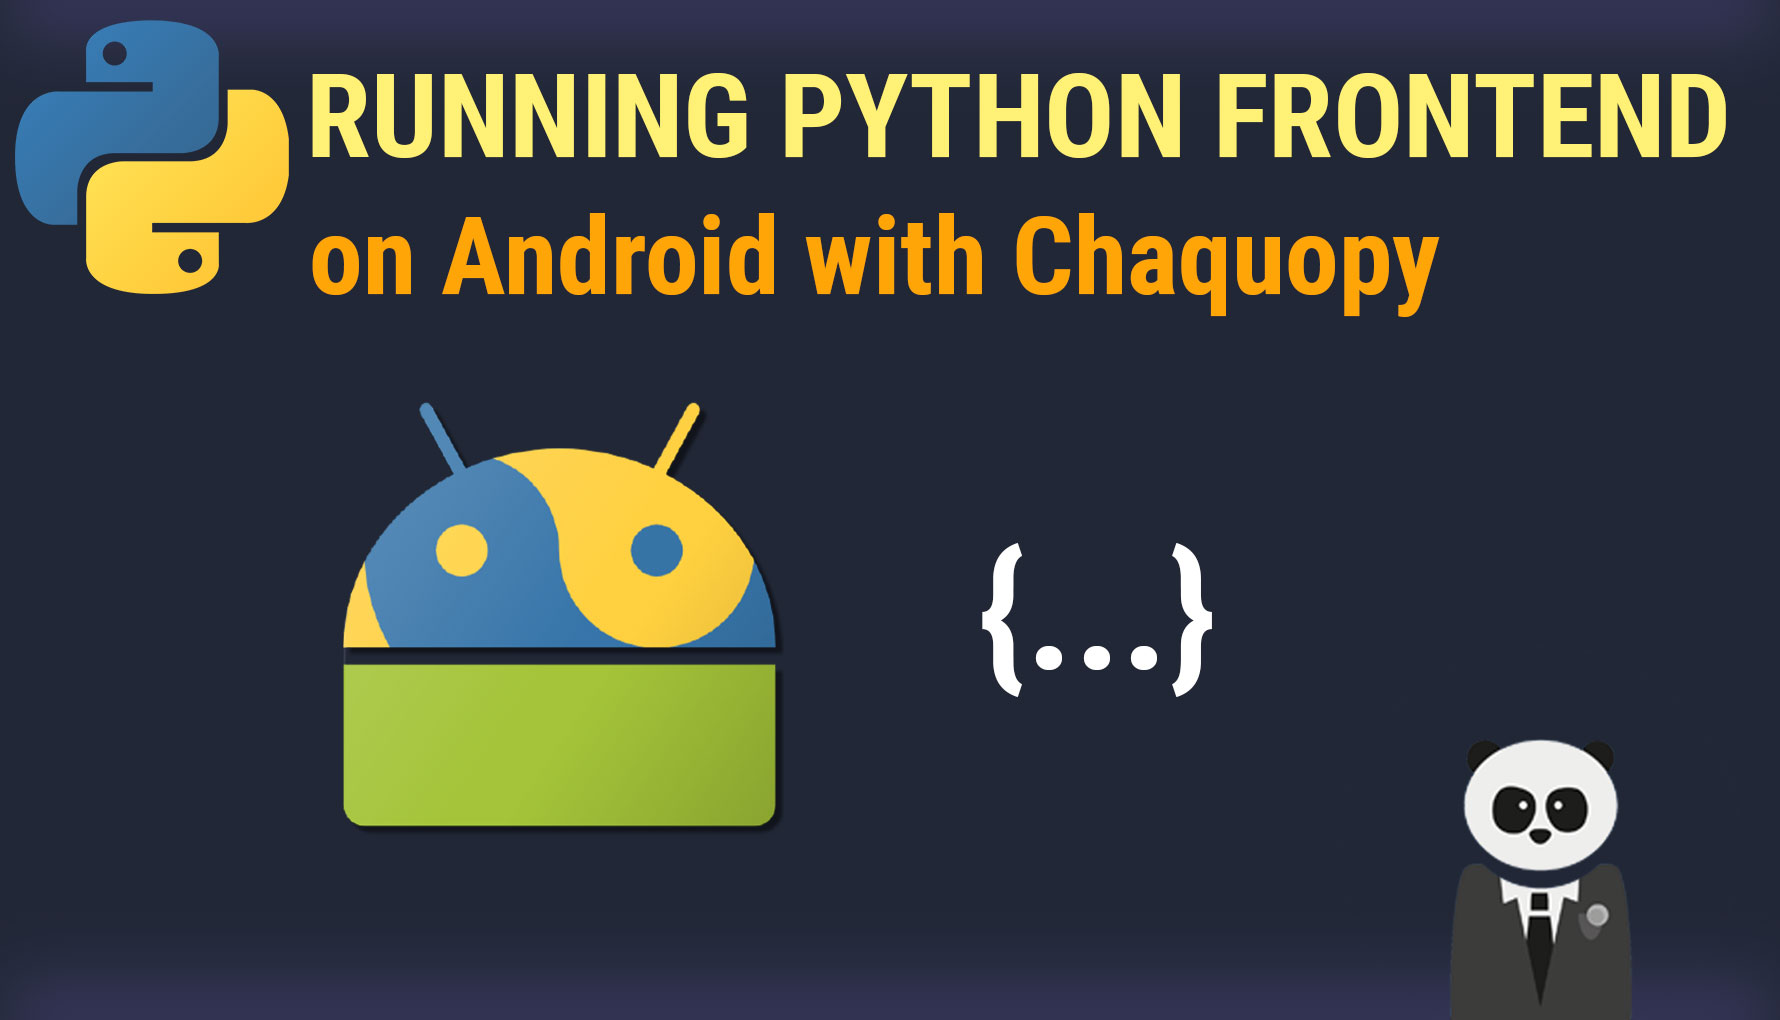 Run Python Scripts in the Android Front-end with Chaquopy